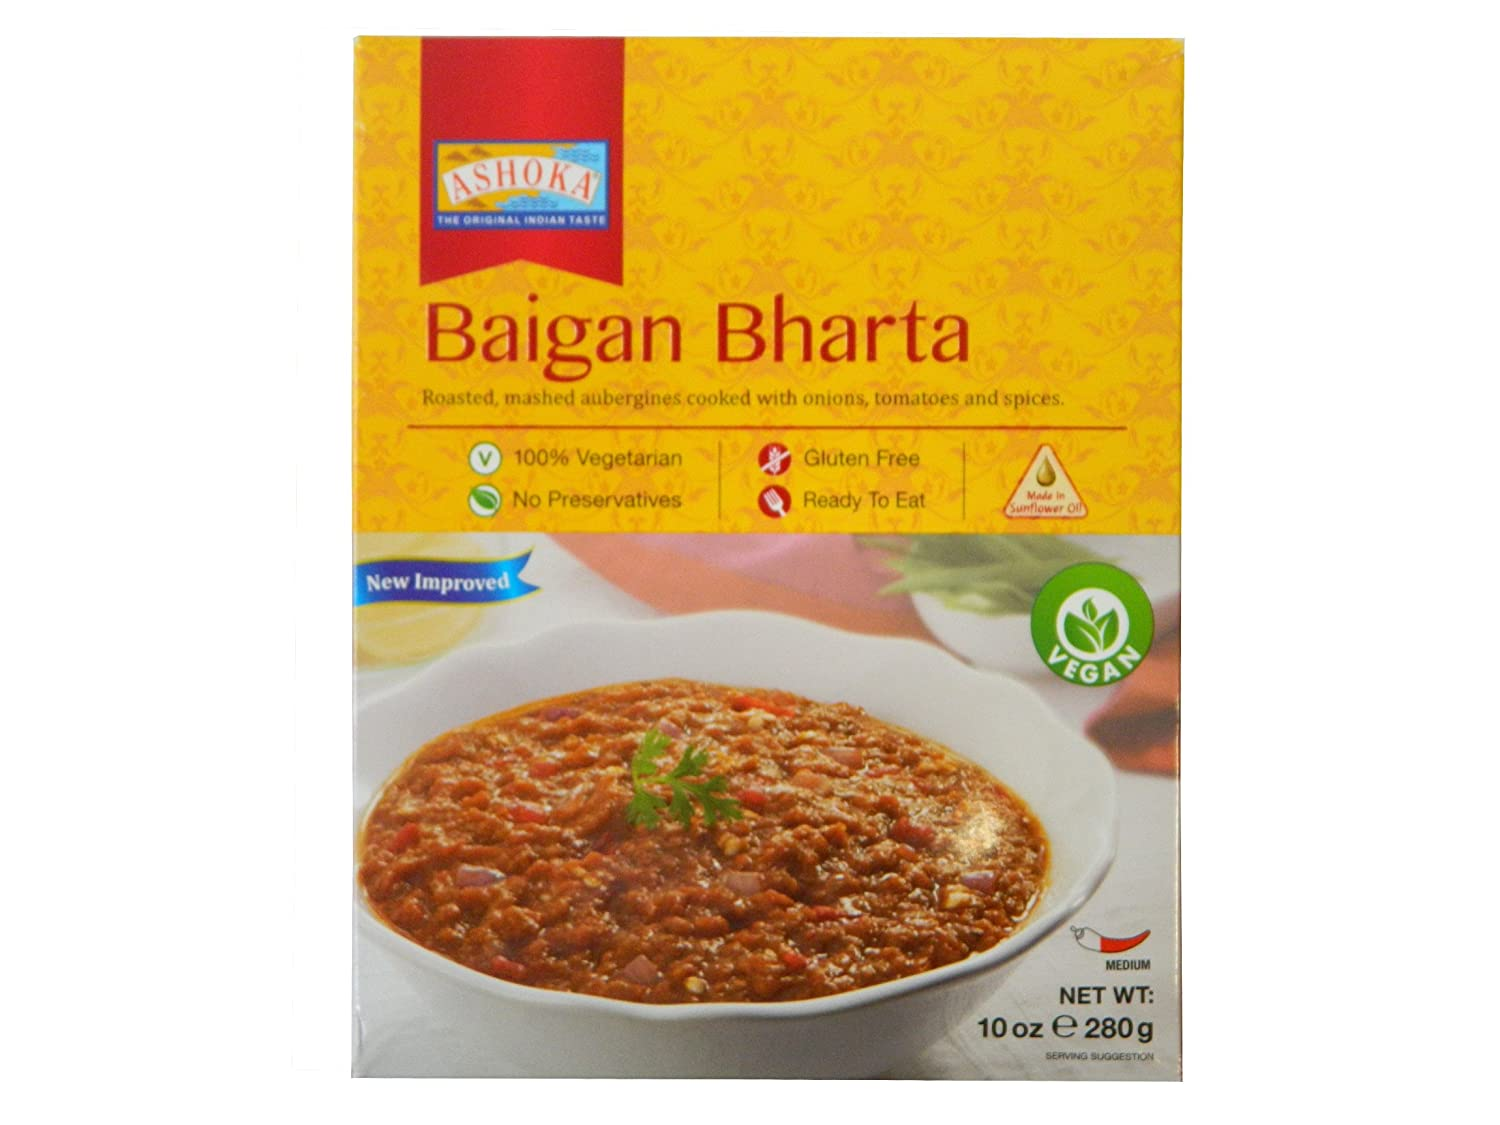 Ashoka Microwaveable Ready to Eat Meals - Baigan Bharta Mashed Aubergines Cooked with Onions, Tomatoes and Spices.